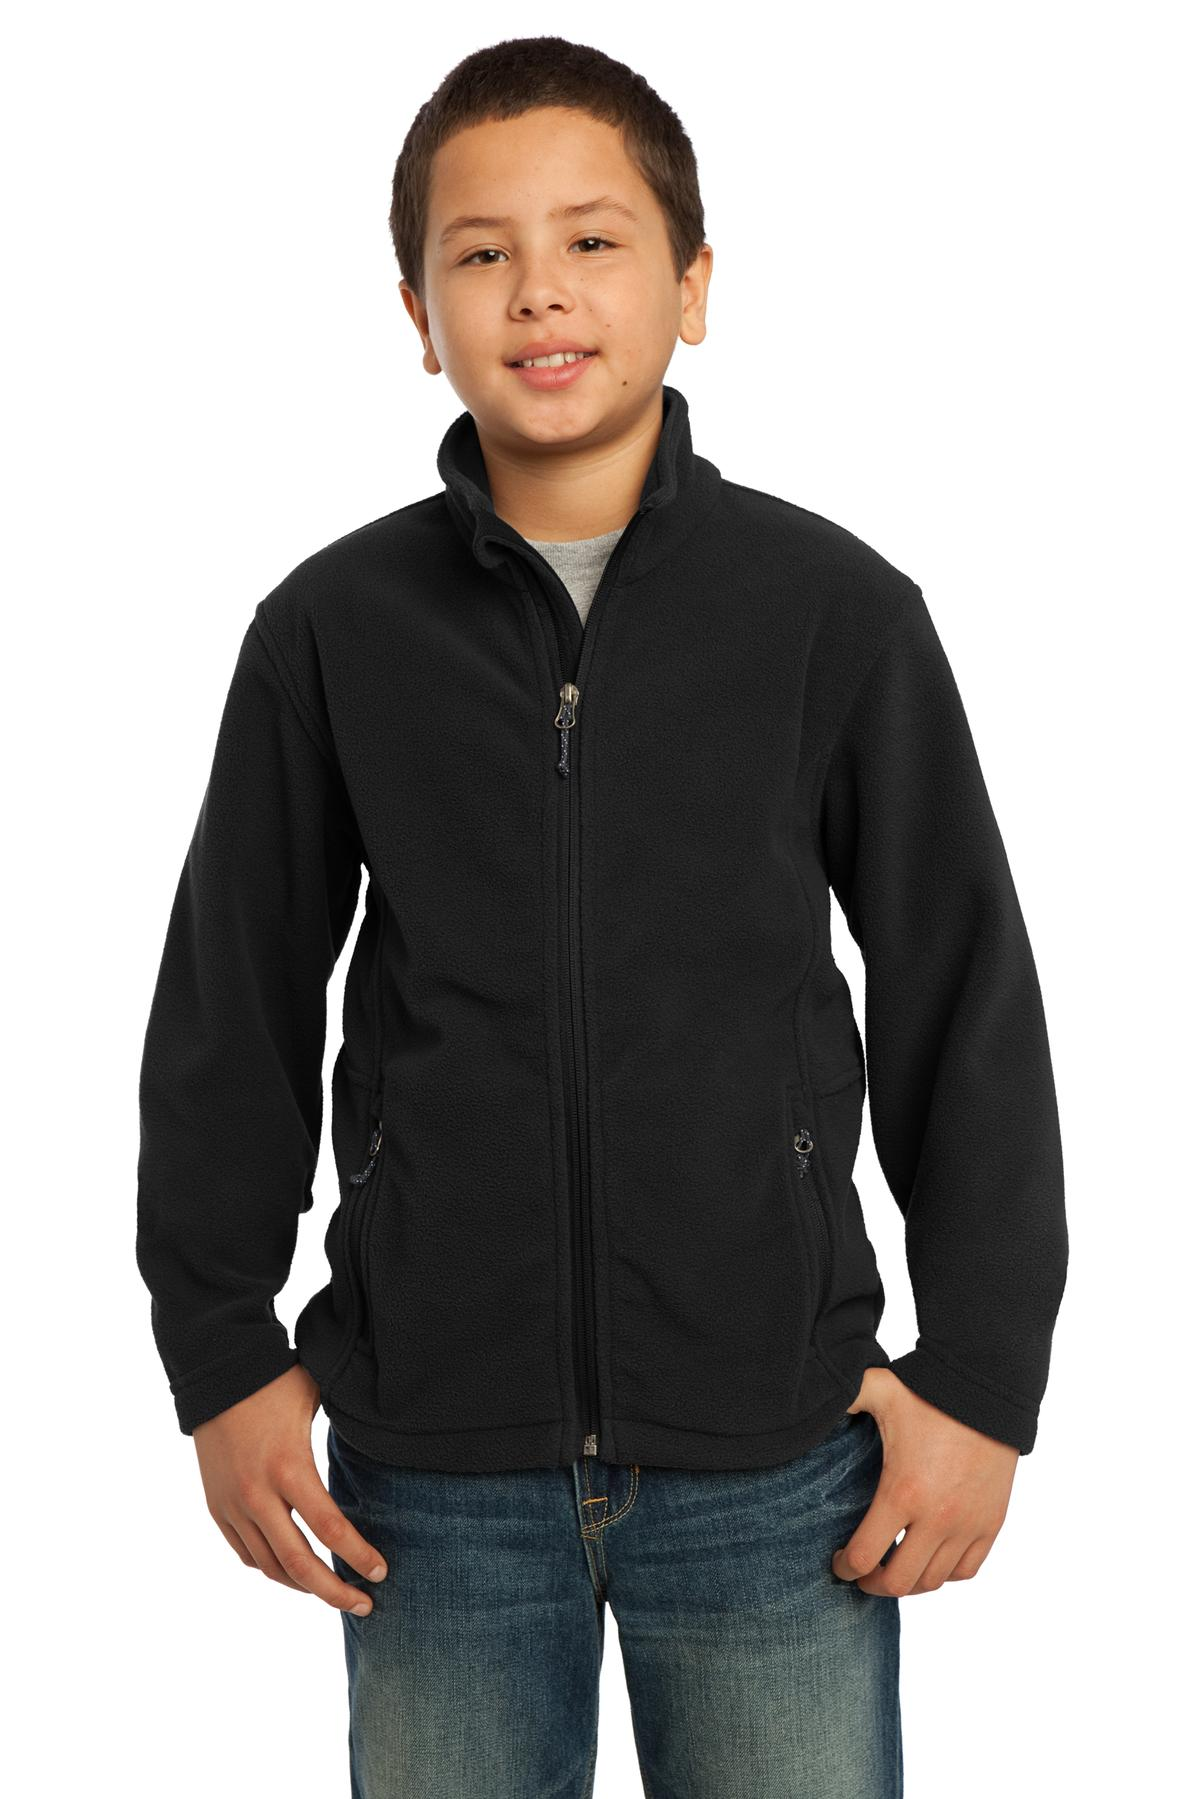 Port Authority ®  Youth Value Fleece Jacket. Y217 - Black